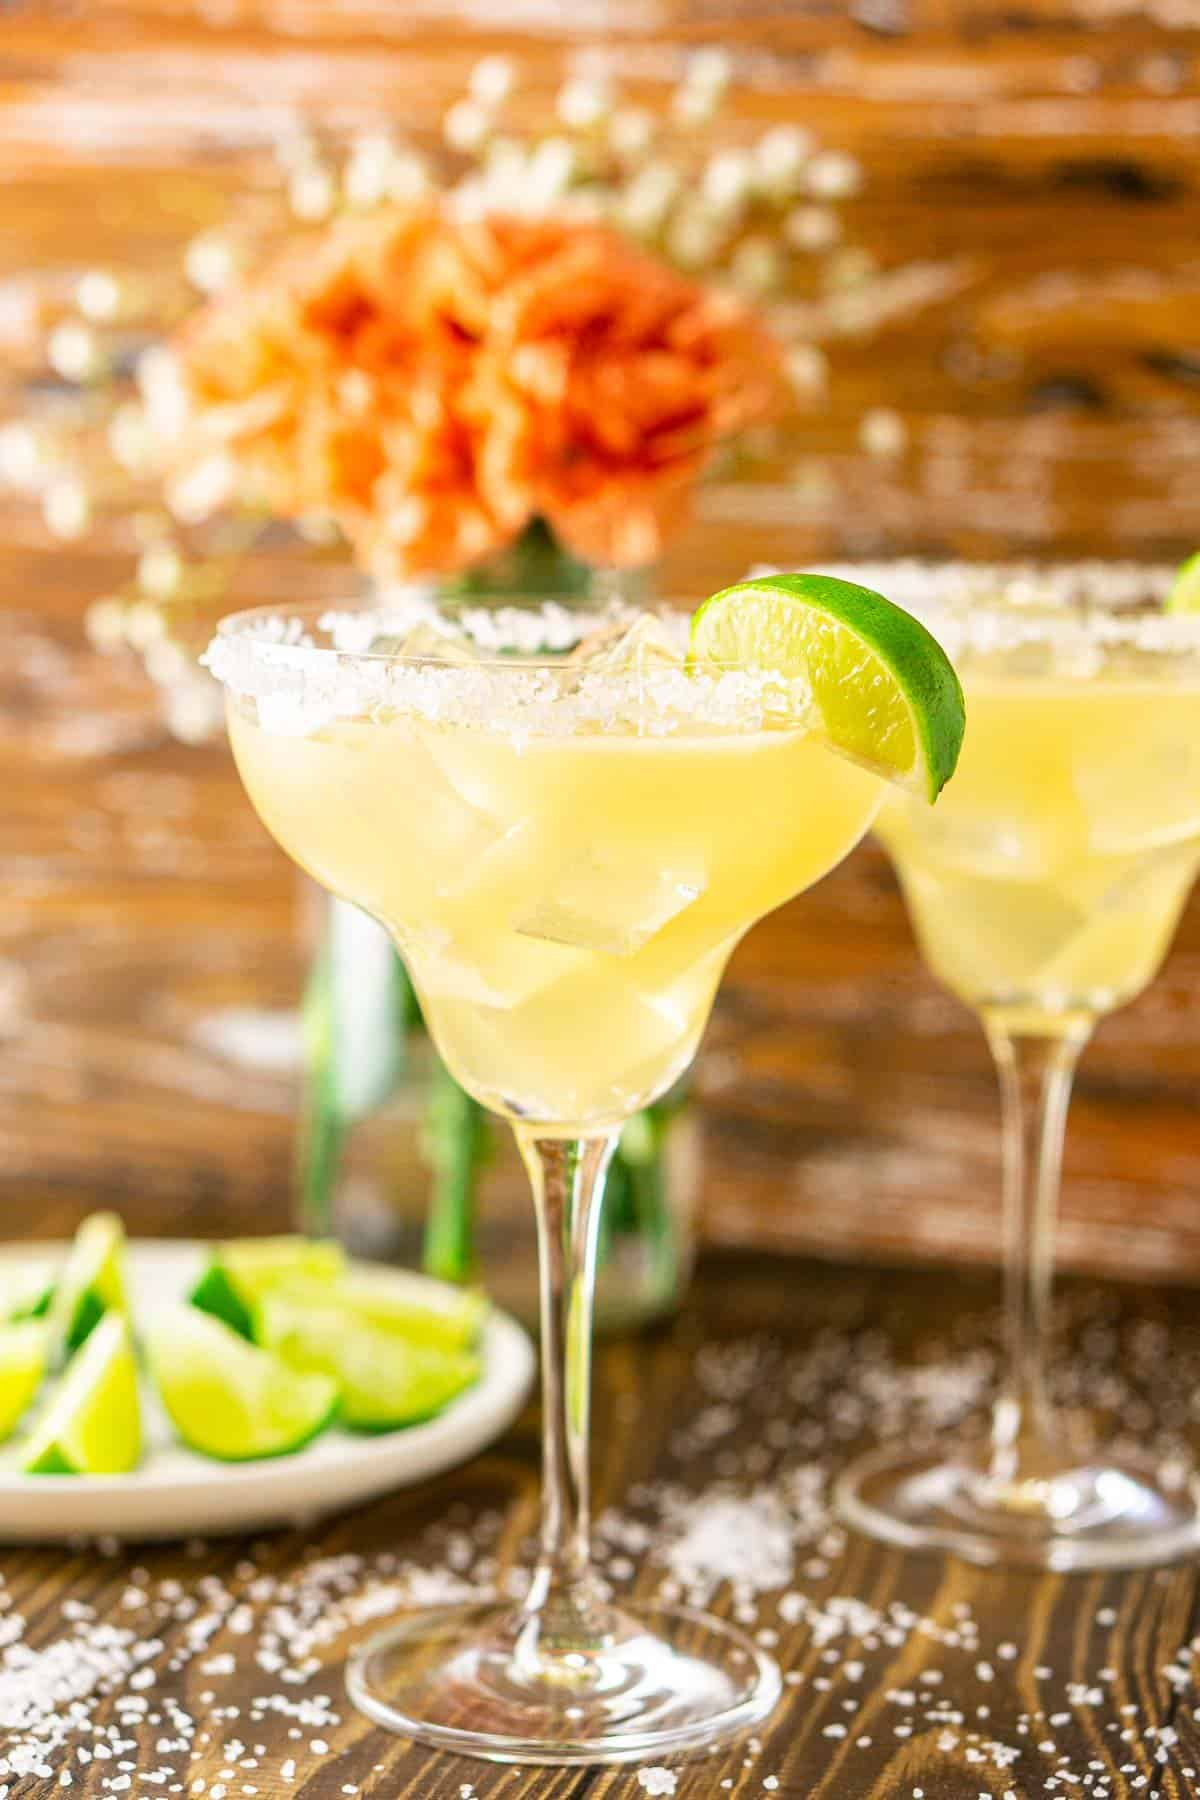 A close-up of a Cadillac margarita with orange flowers on the left.